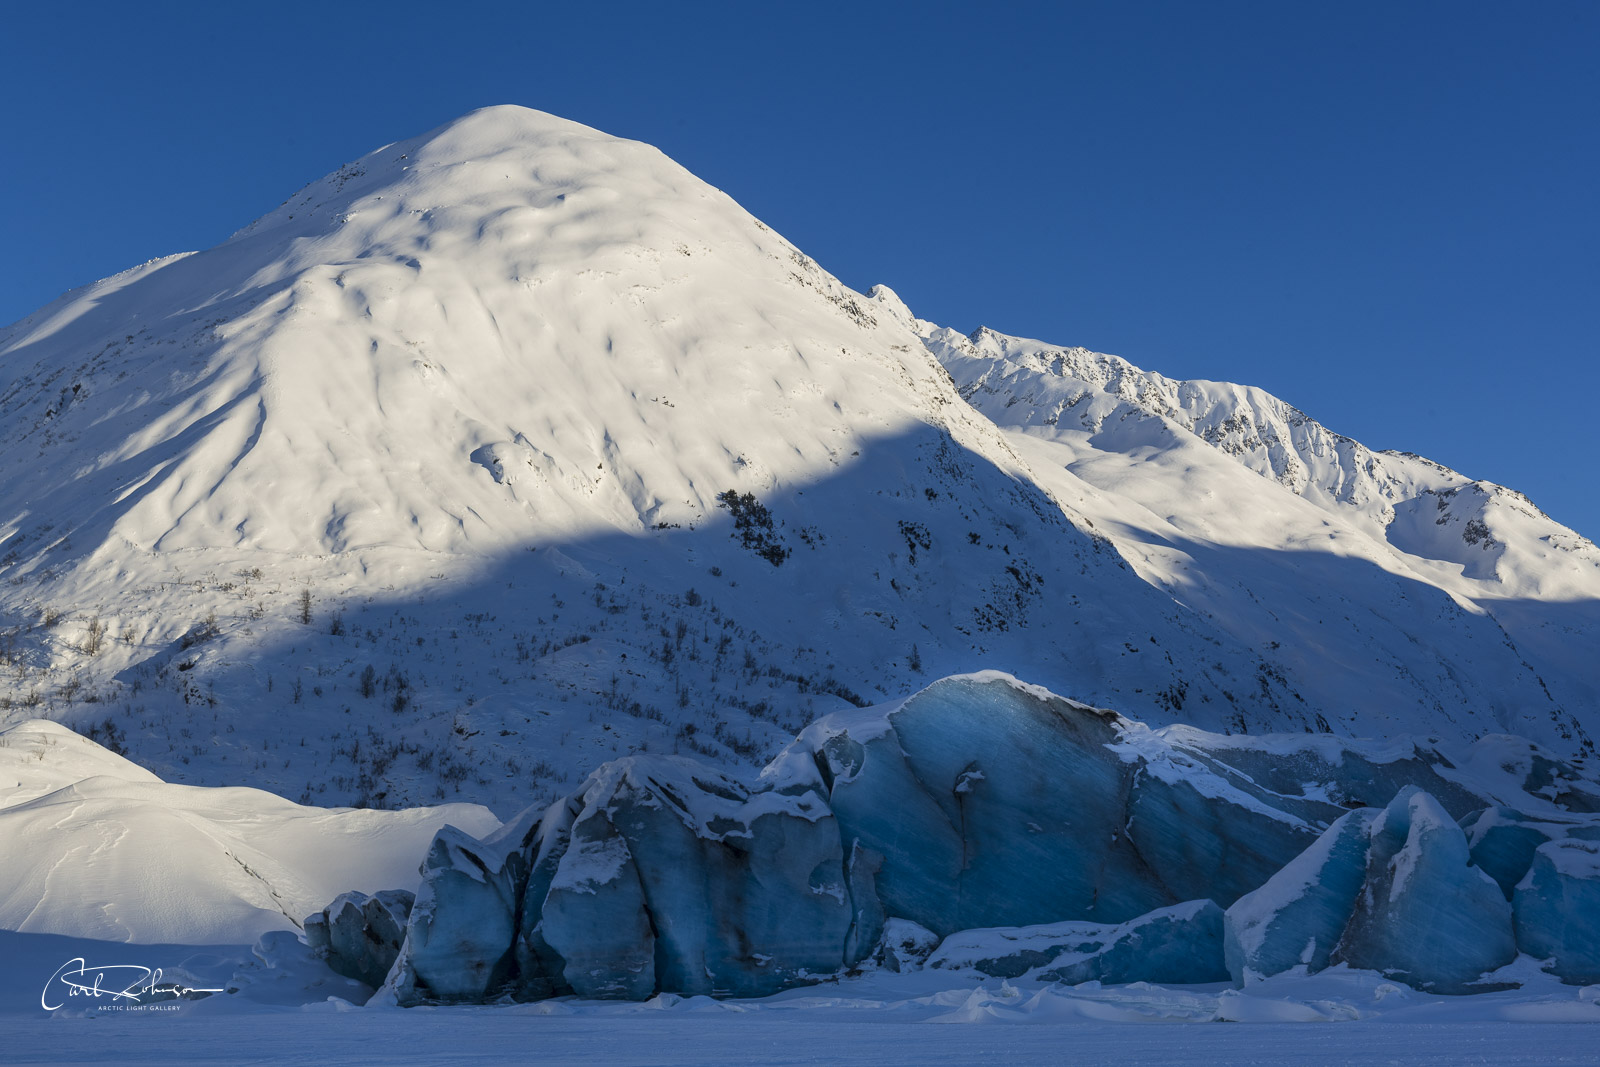 The late afternoon light lightly brushes the edge of the toe of Spencer Glacier.